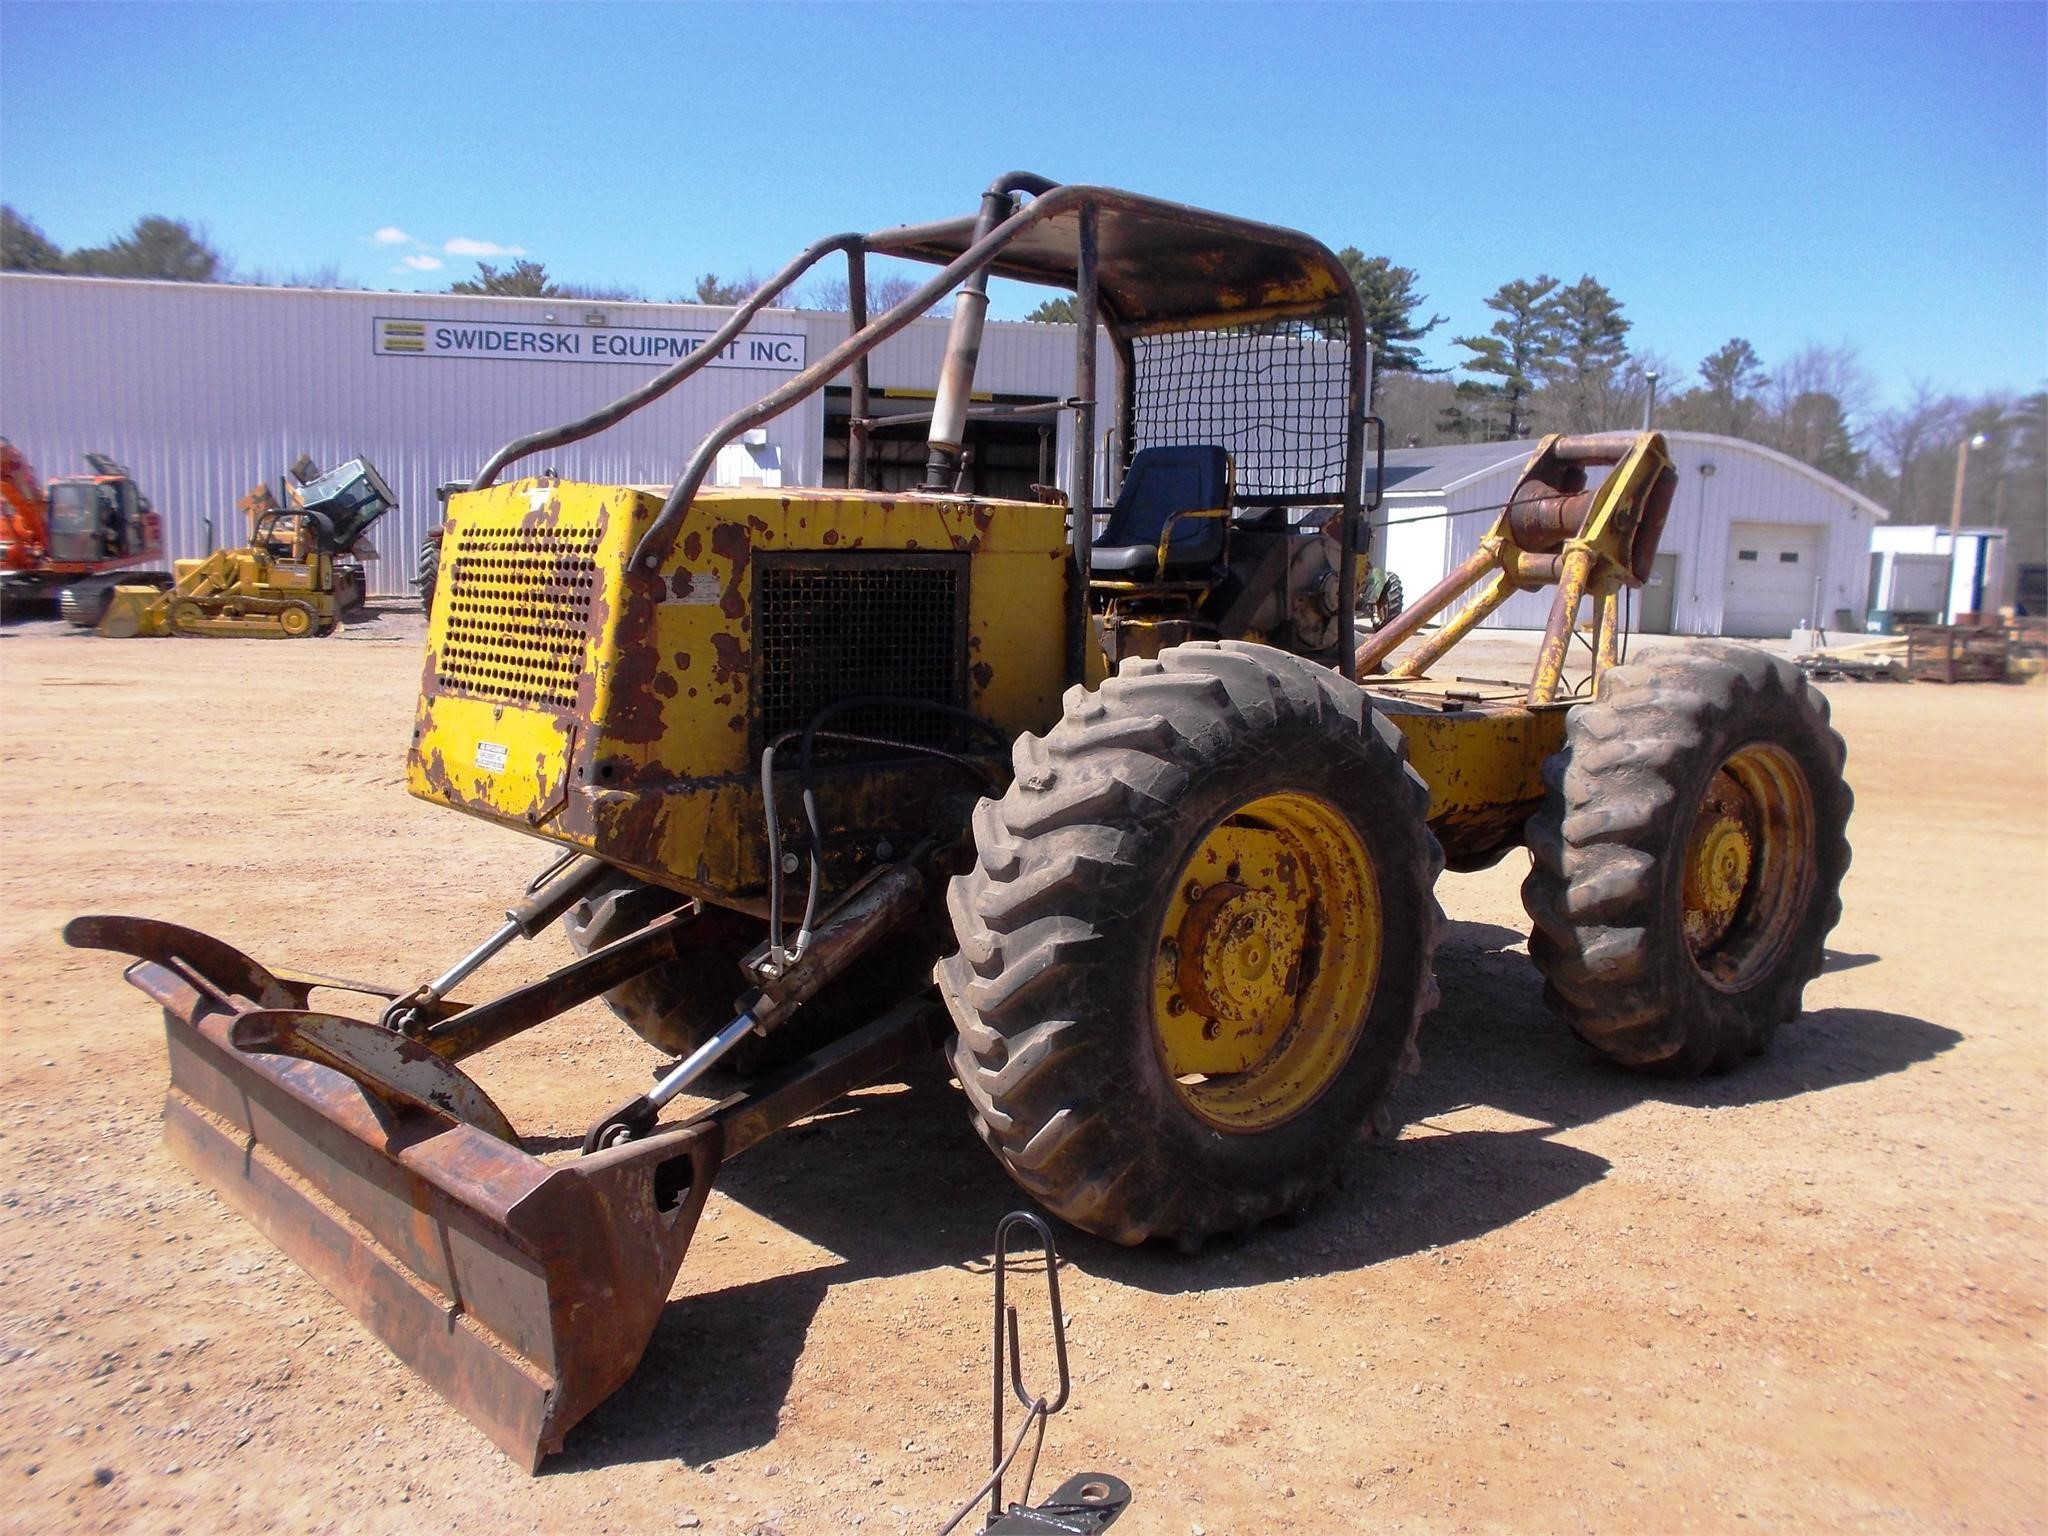 1974 TREE FARMER C5 Log Skidder